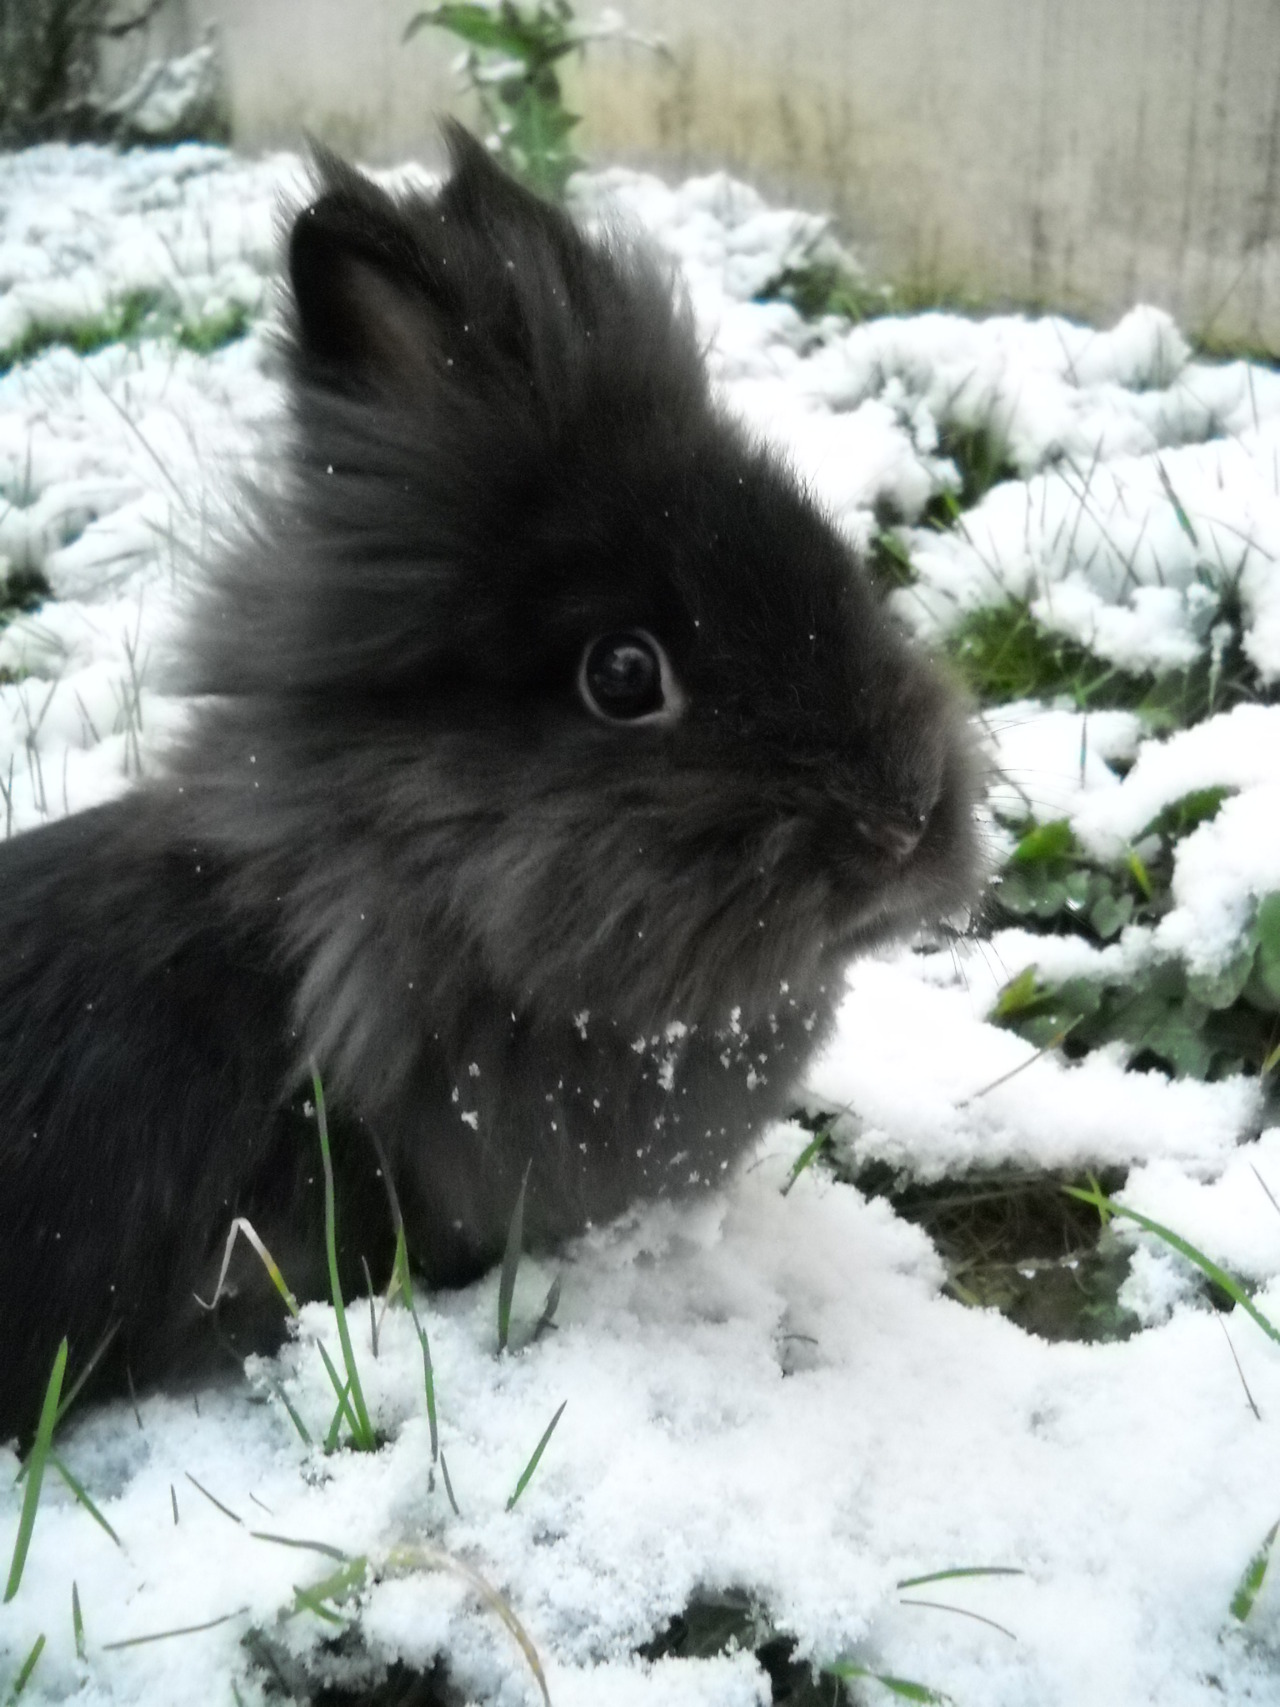 Bunny Sends a Scout into the Snow; Scout Bunny Reports All Is Well 2